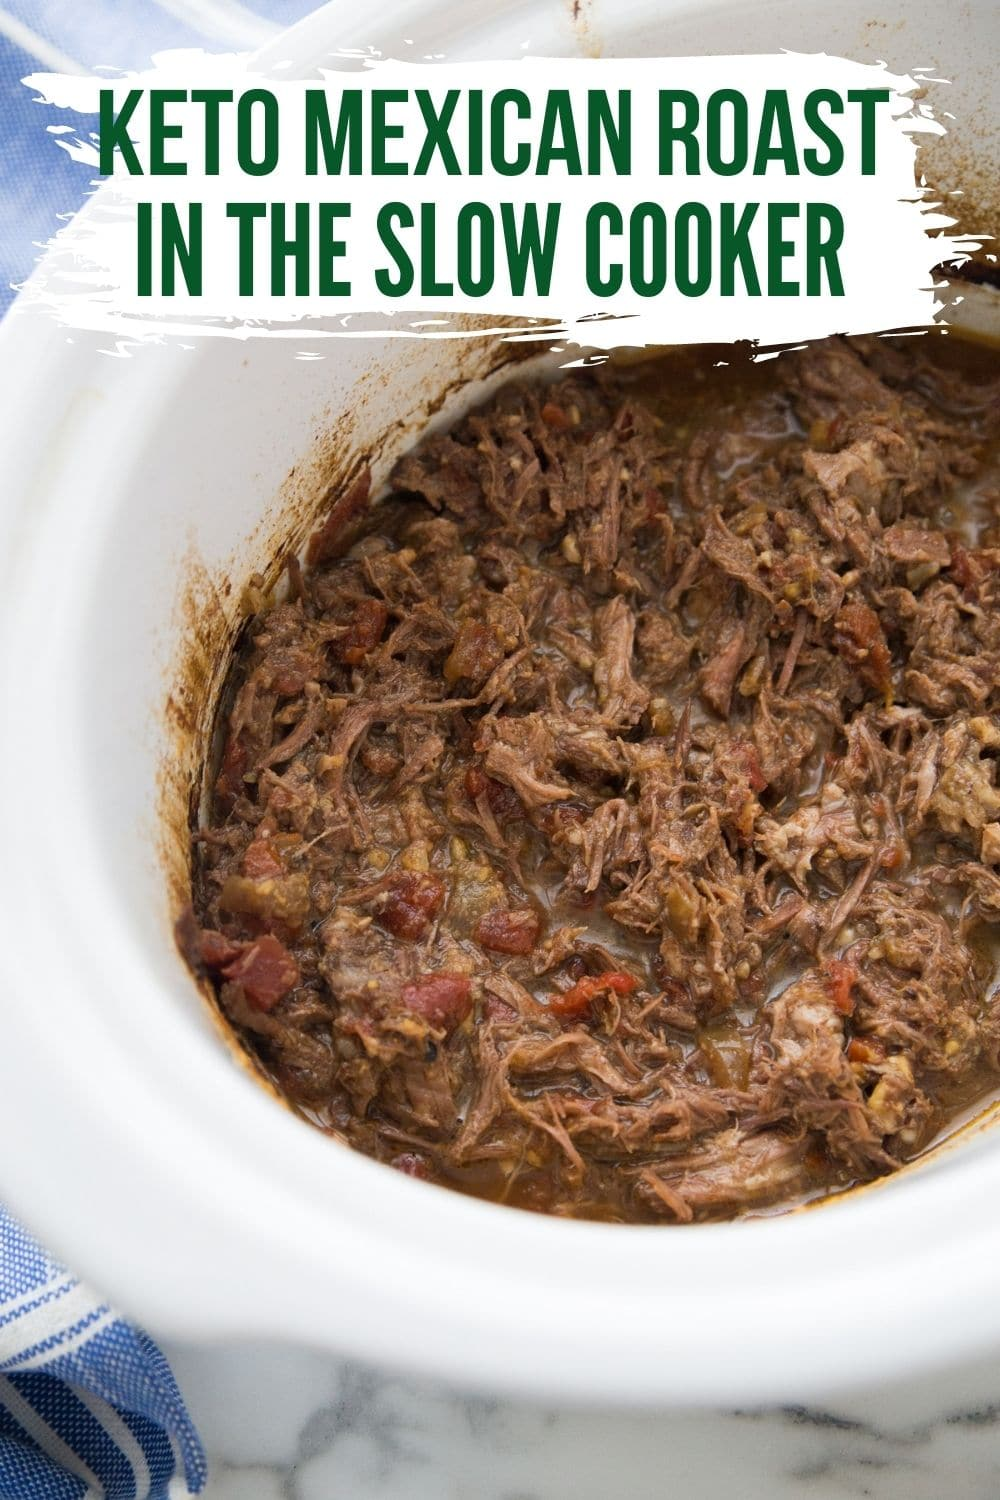 Keto Mexican Pot Roast in the Slow Cooker